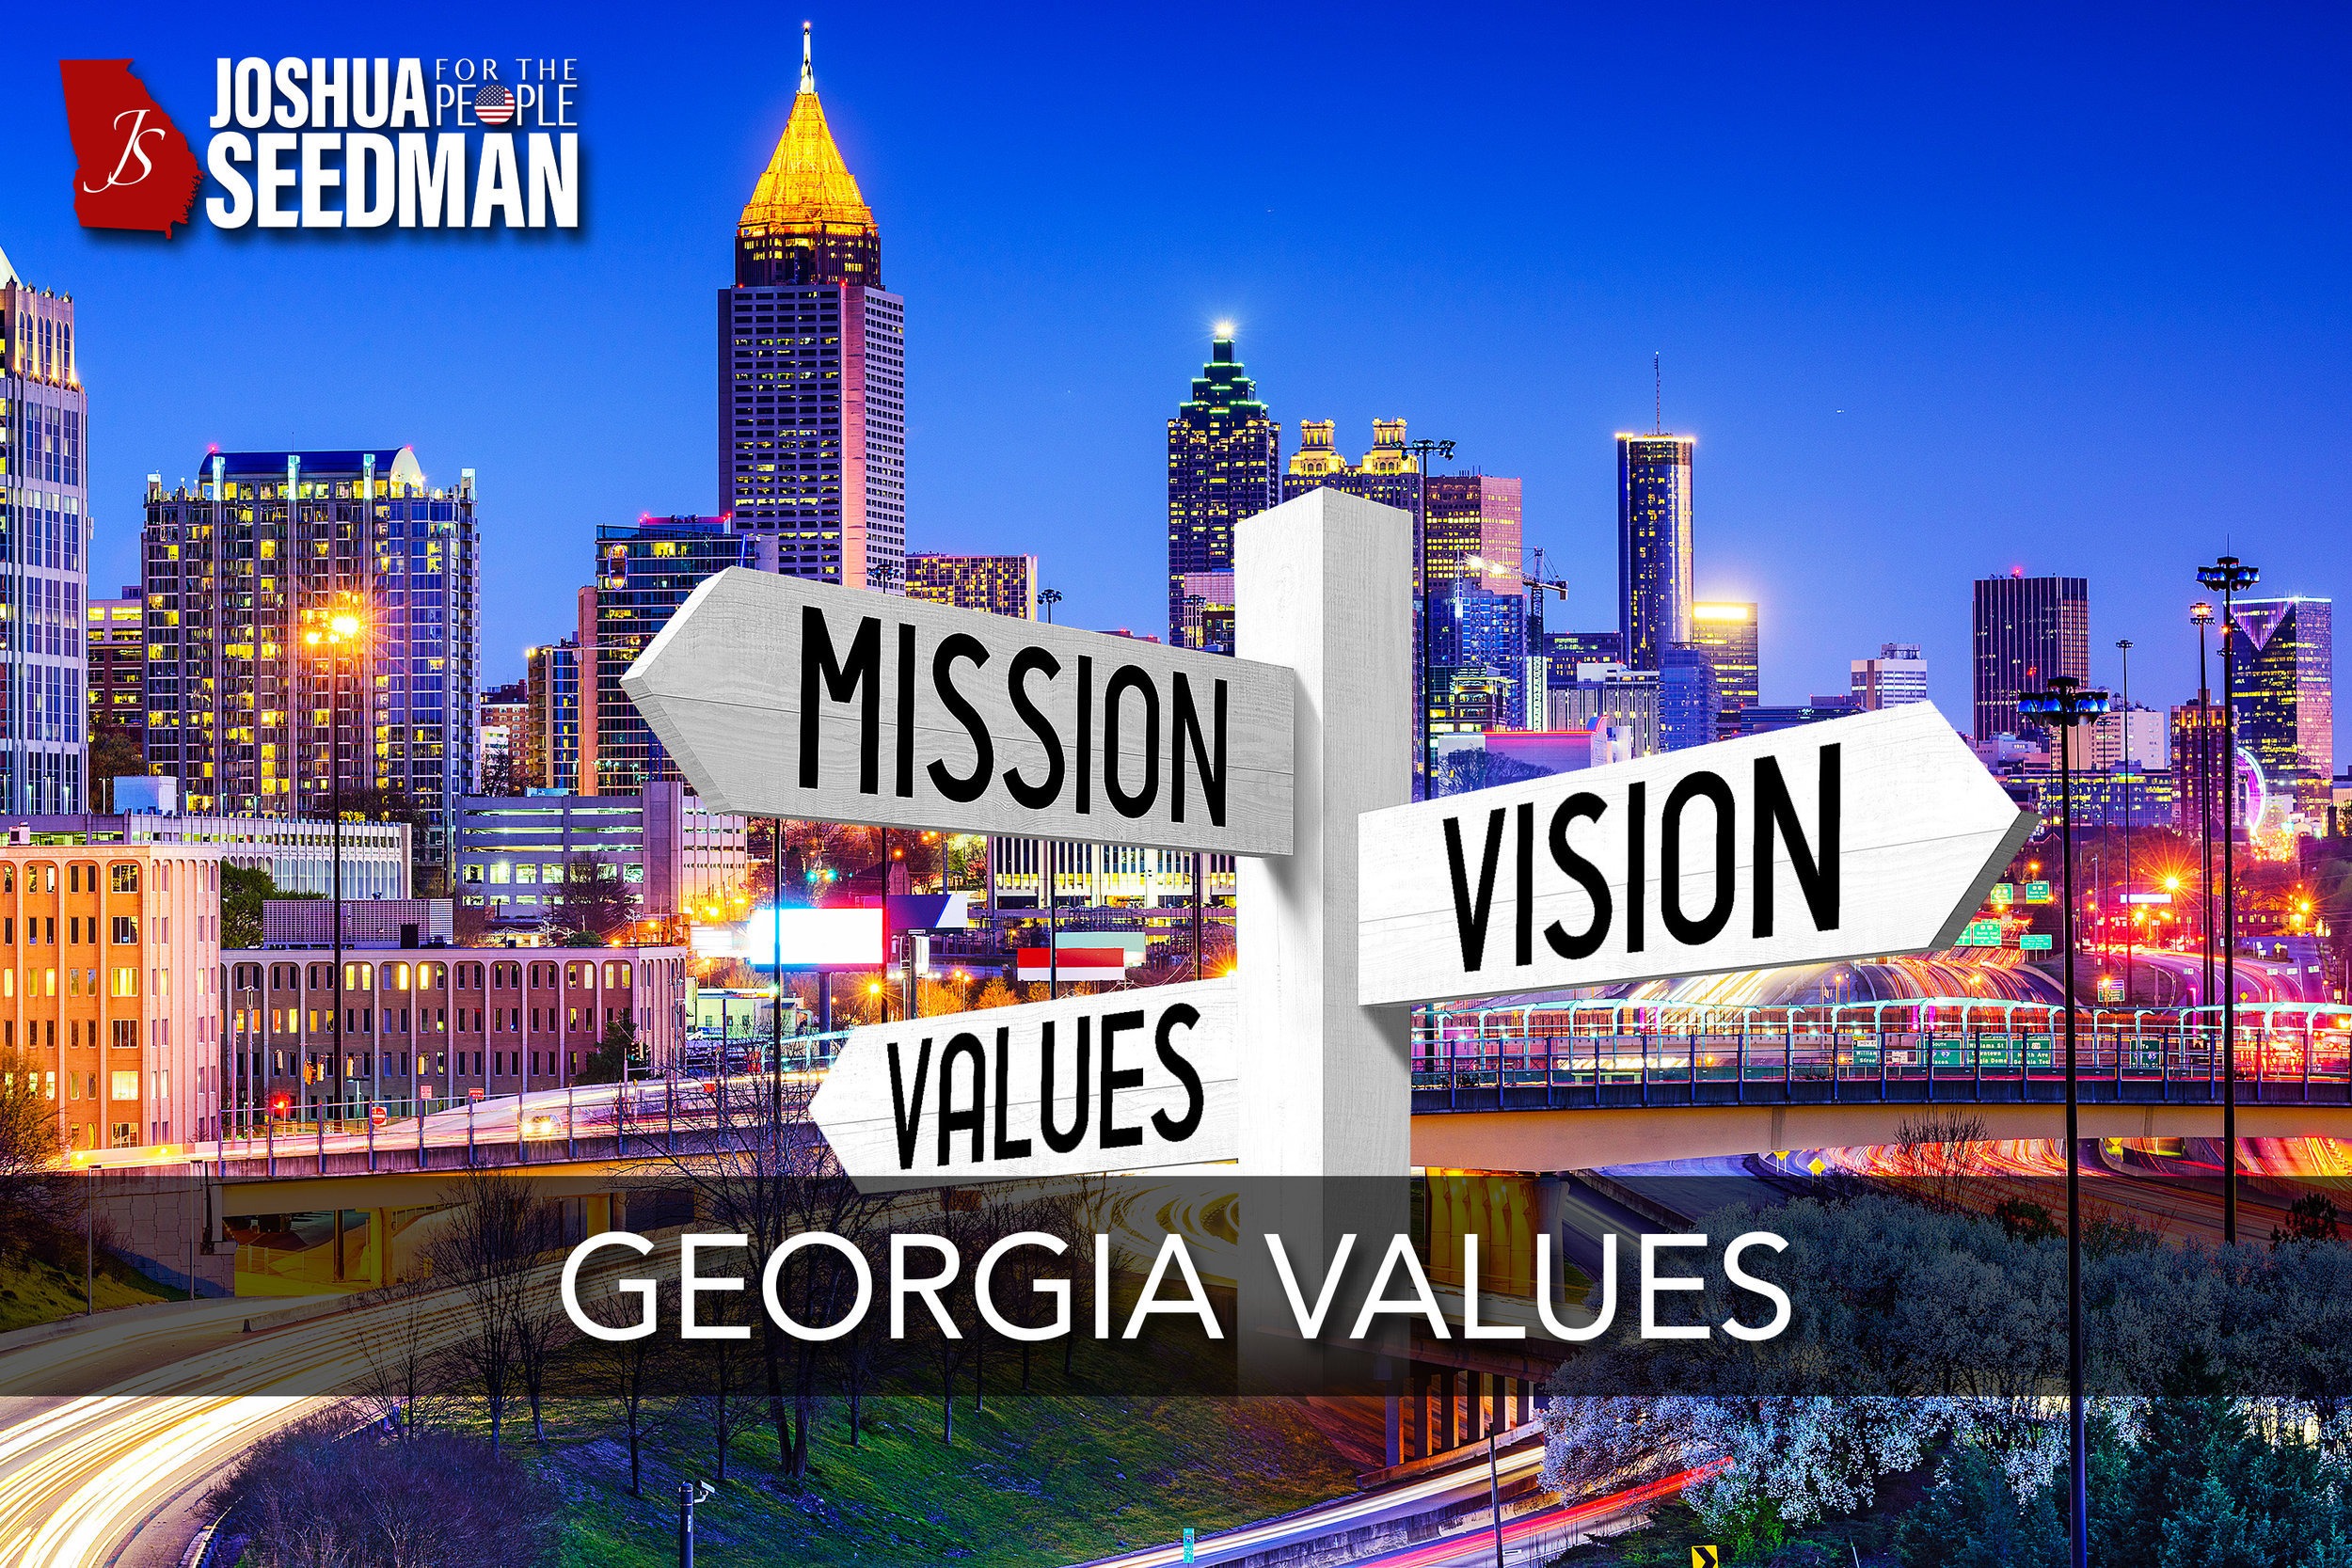 Georgia Values